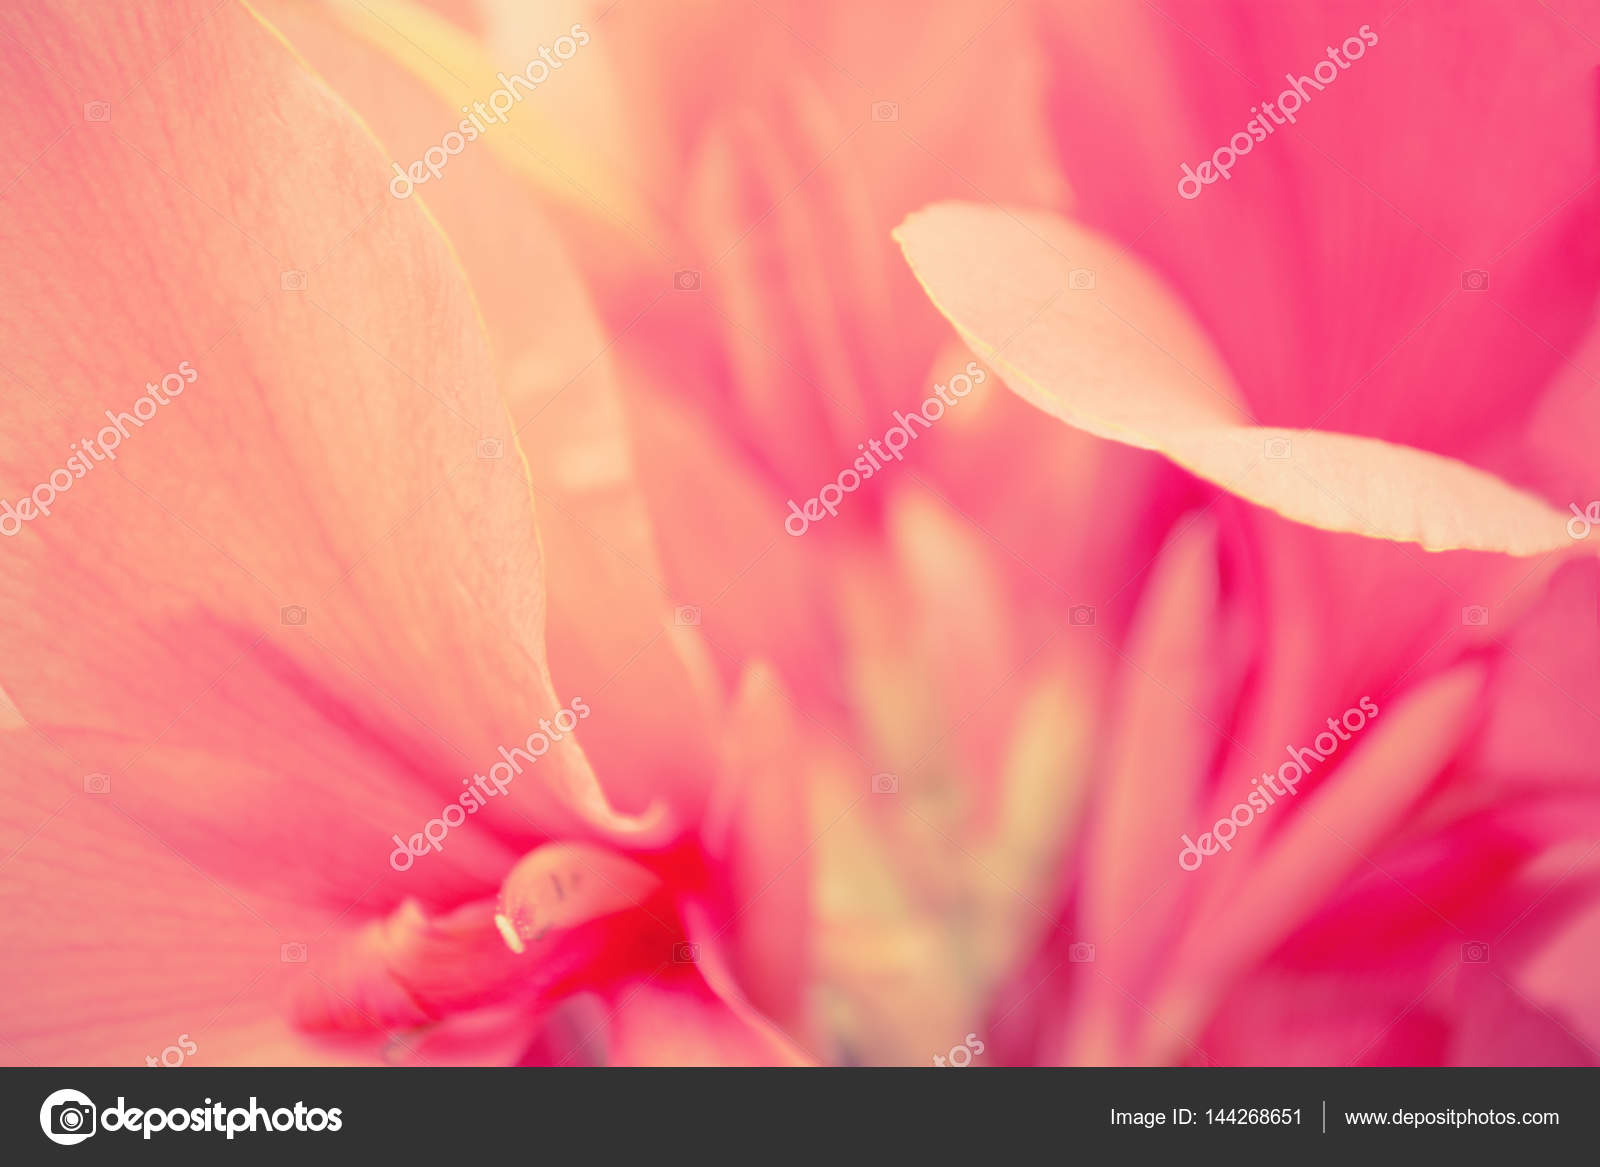 Pink Flower Petals Abstract Nature Background Stock Photo